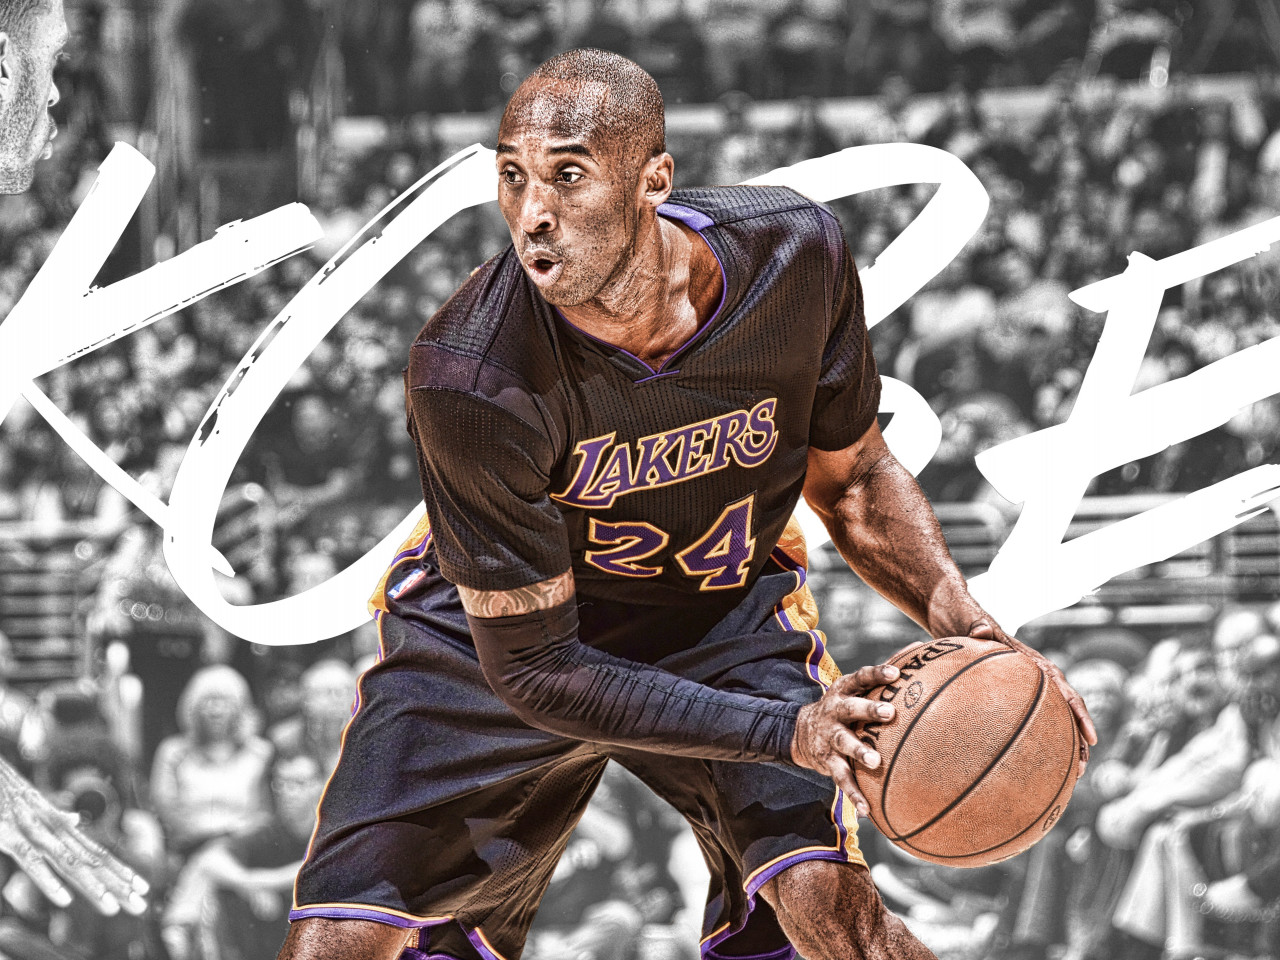 RIP Kobe Bryant wallpaper 1280x960